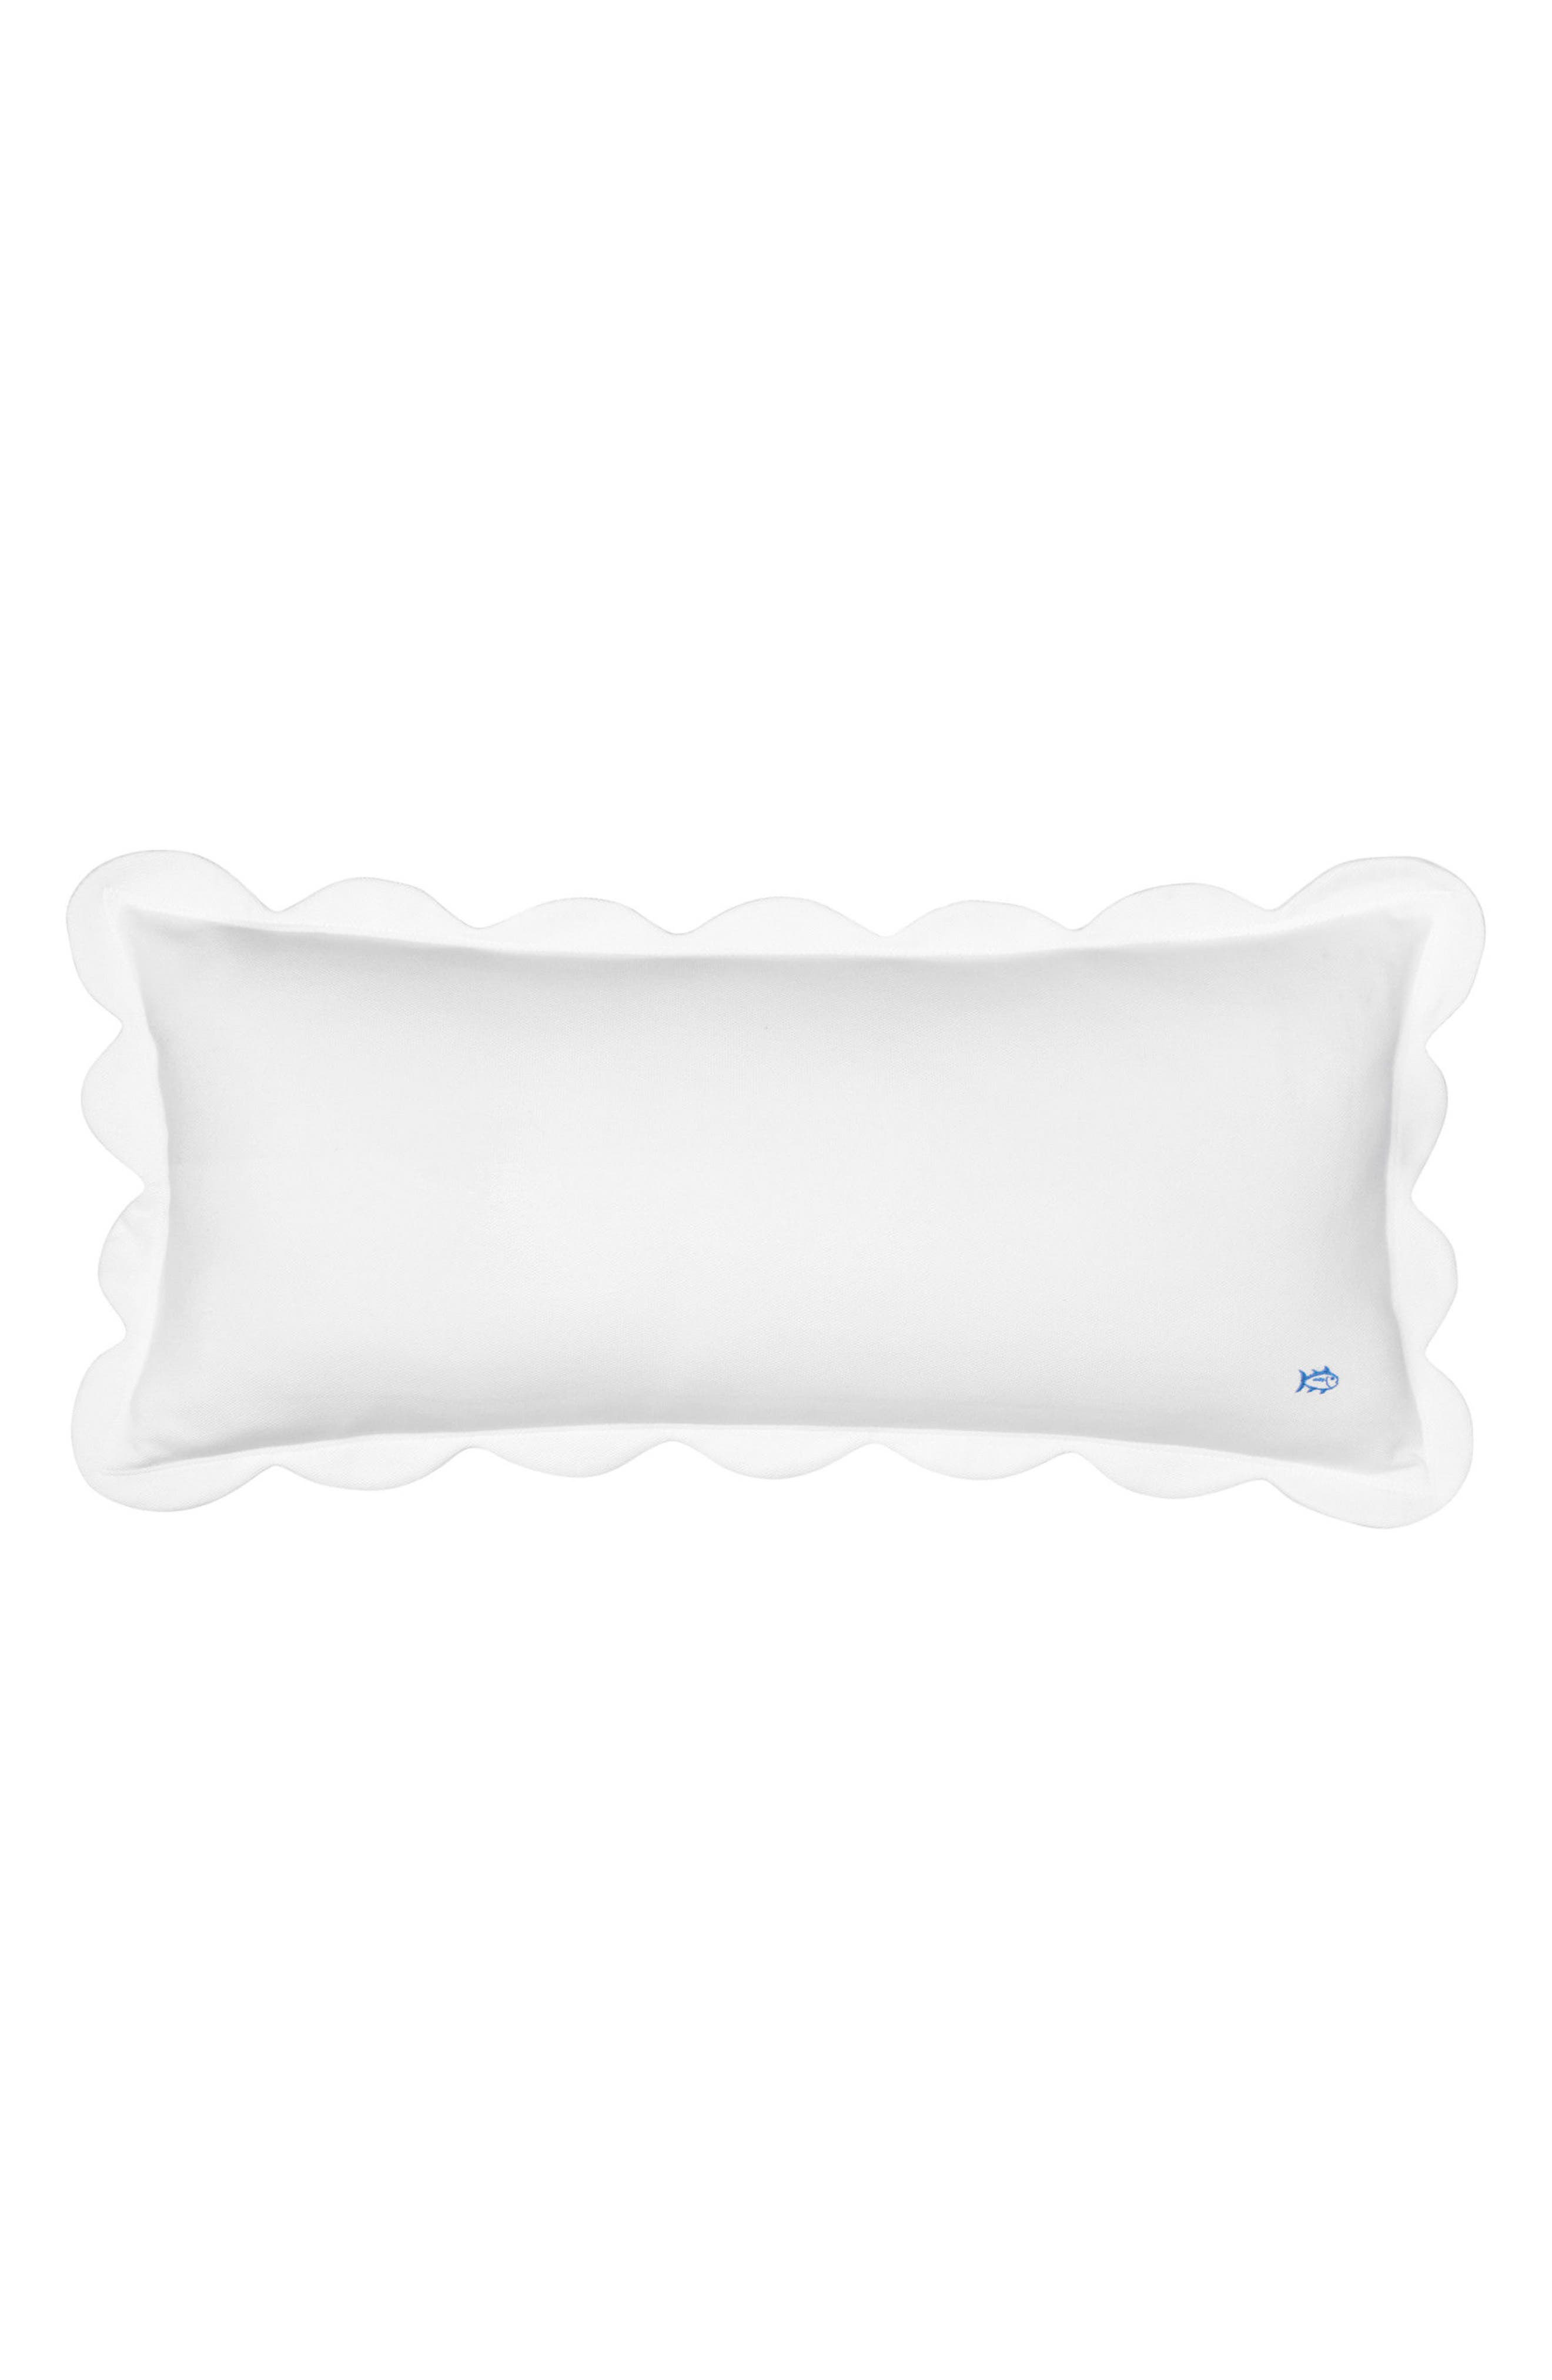 Sailgate Scalloped Accent Pillow,                         Main,                         color, 100